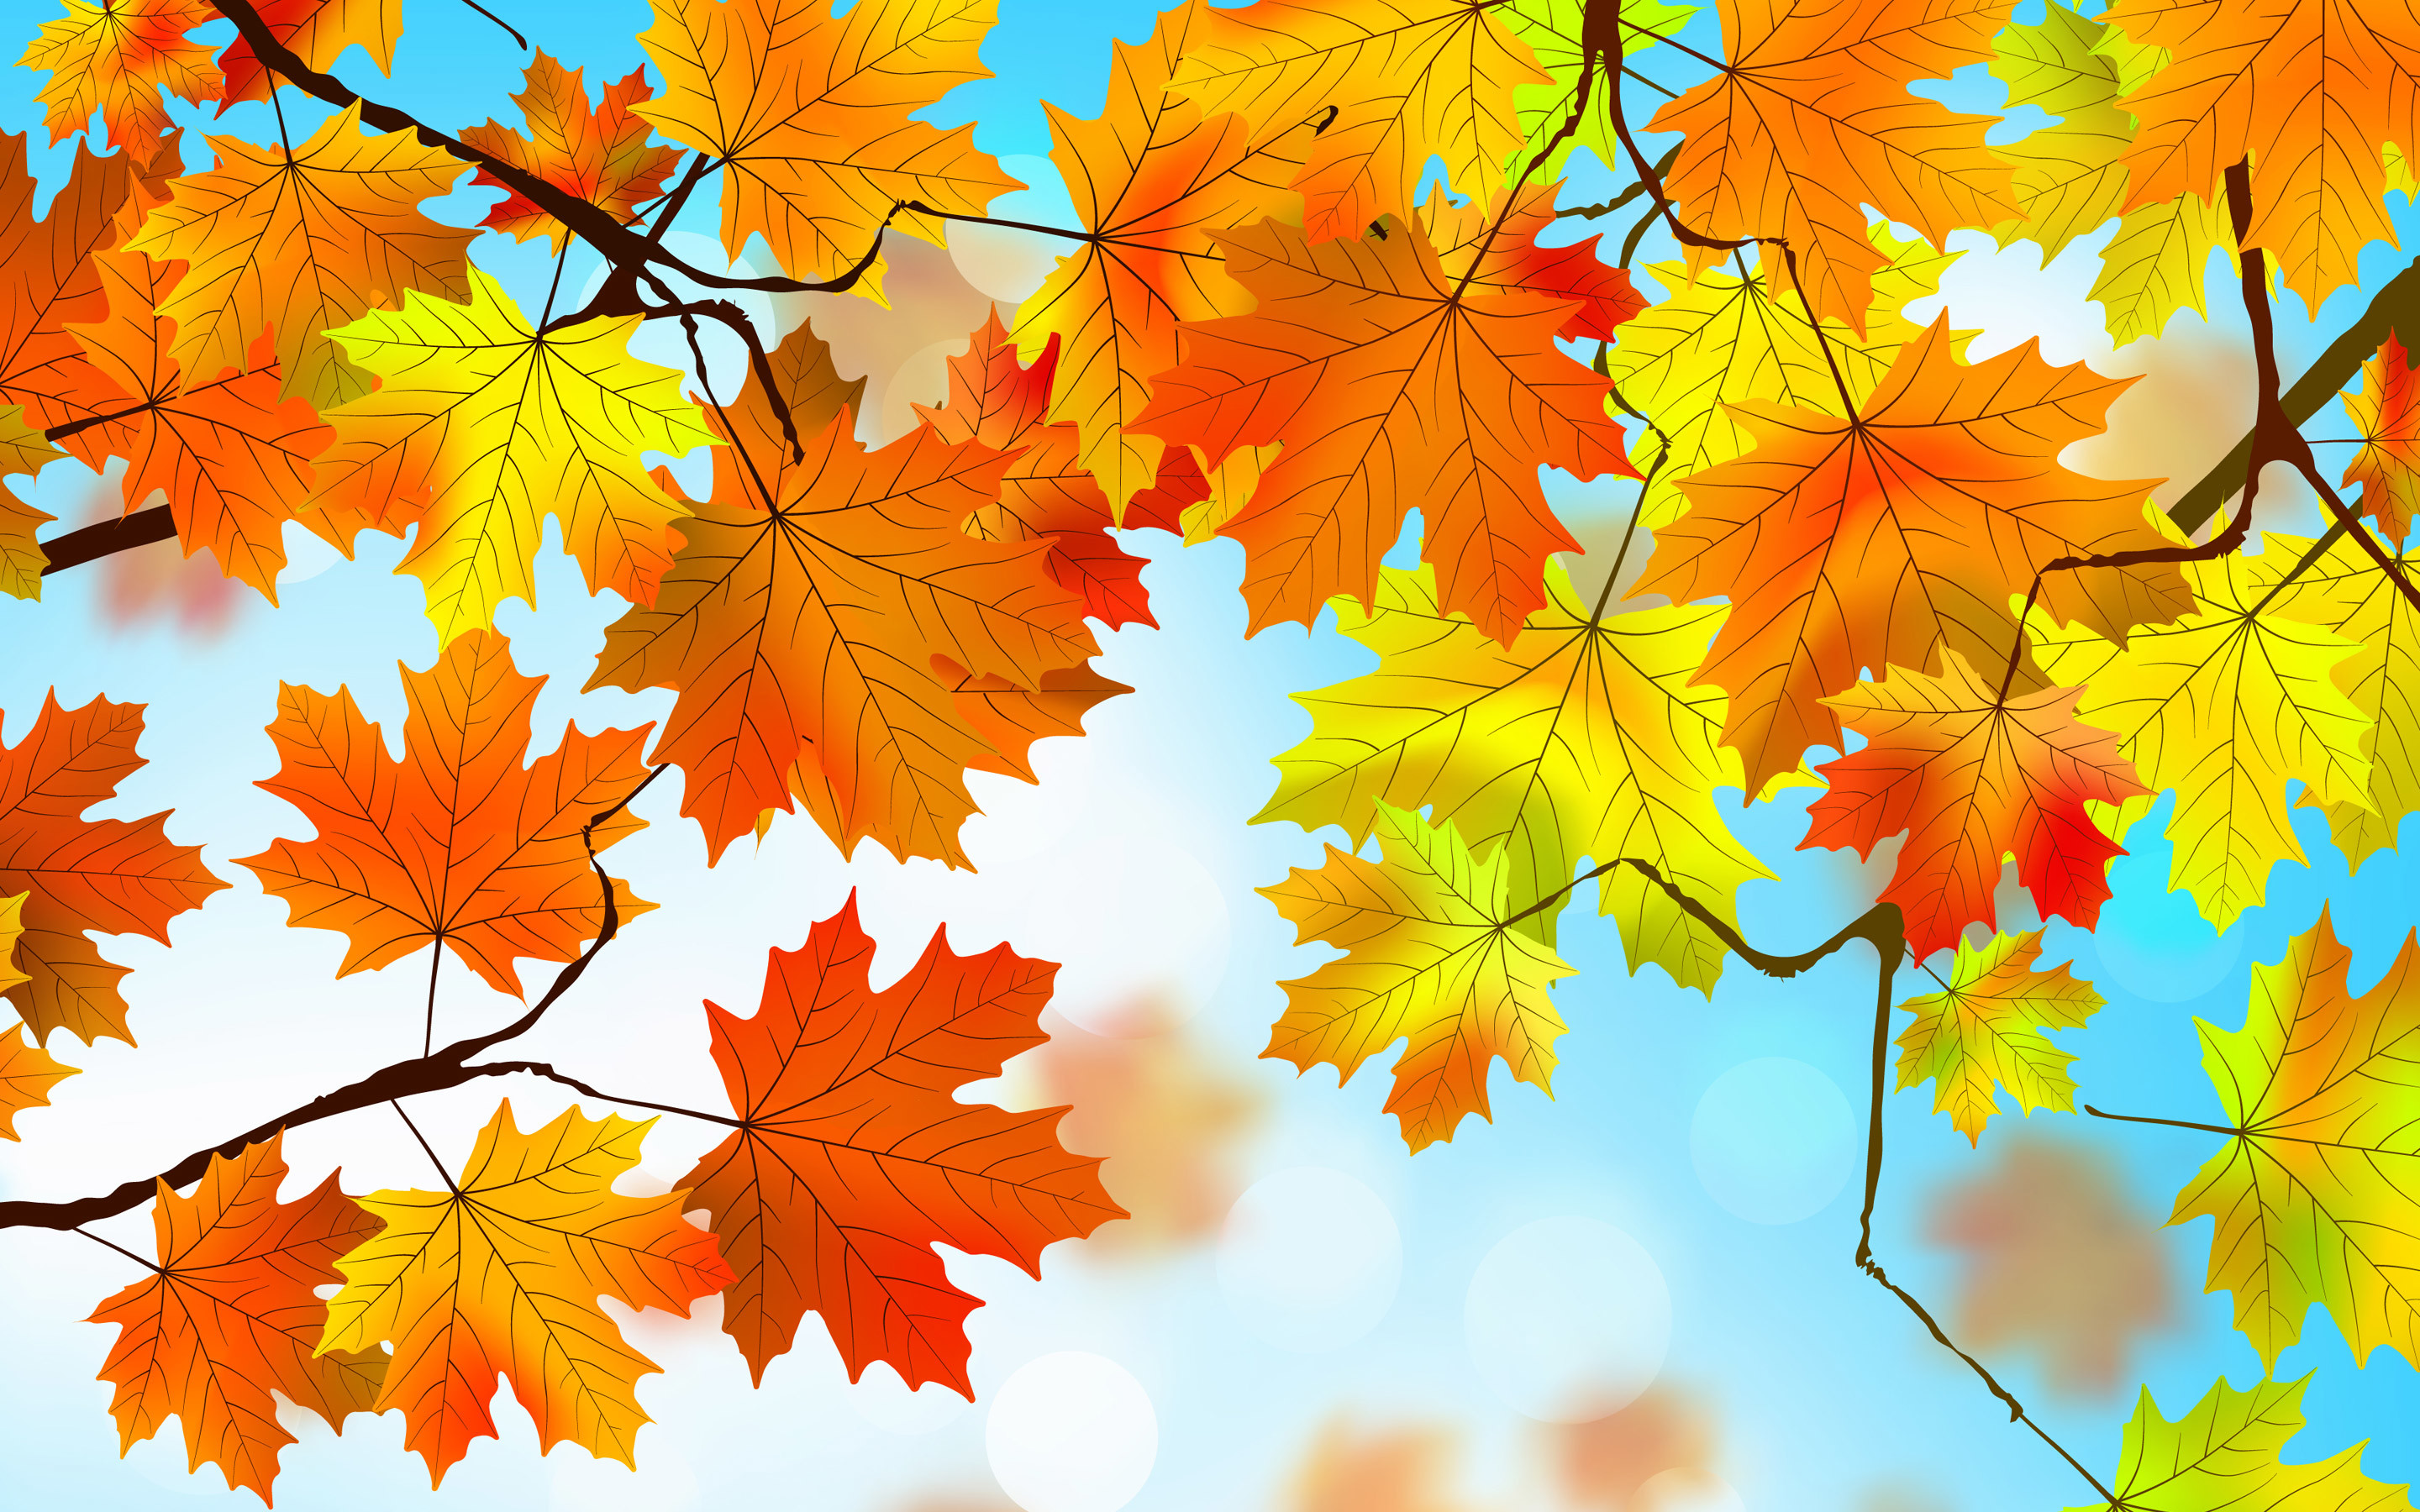 HD Autumn Wallpaper (80+ Images